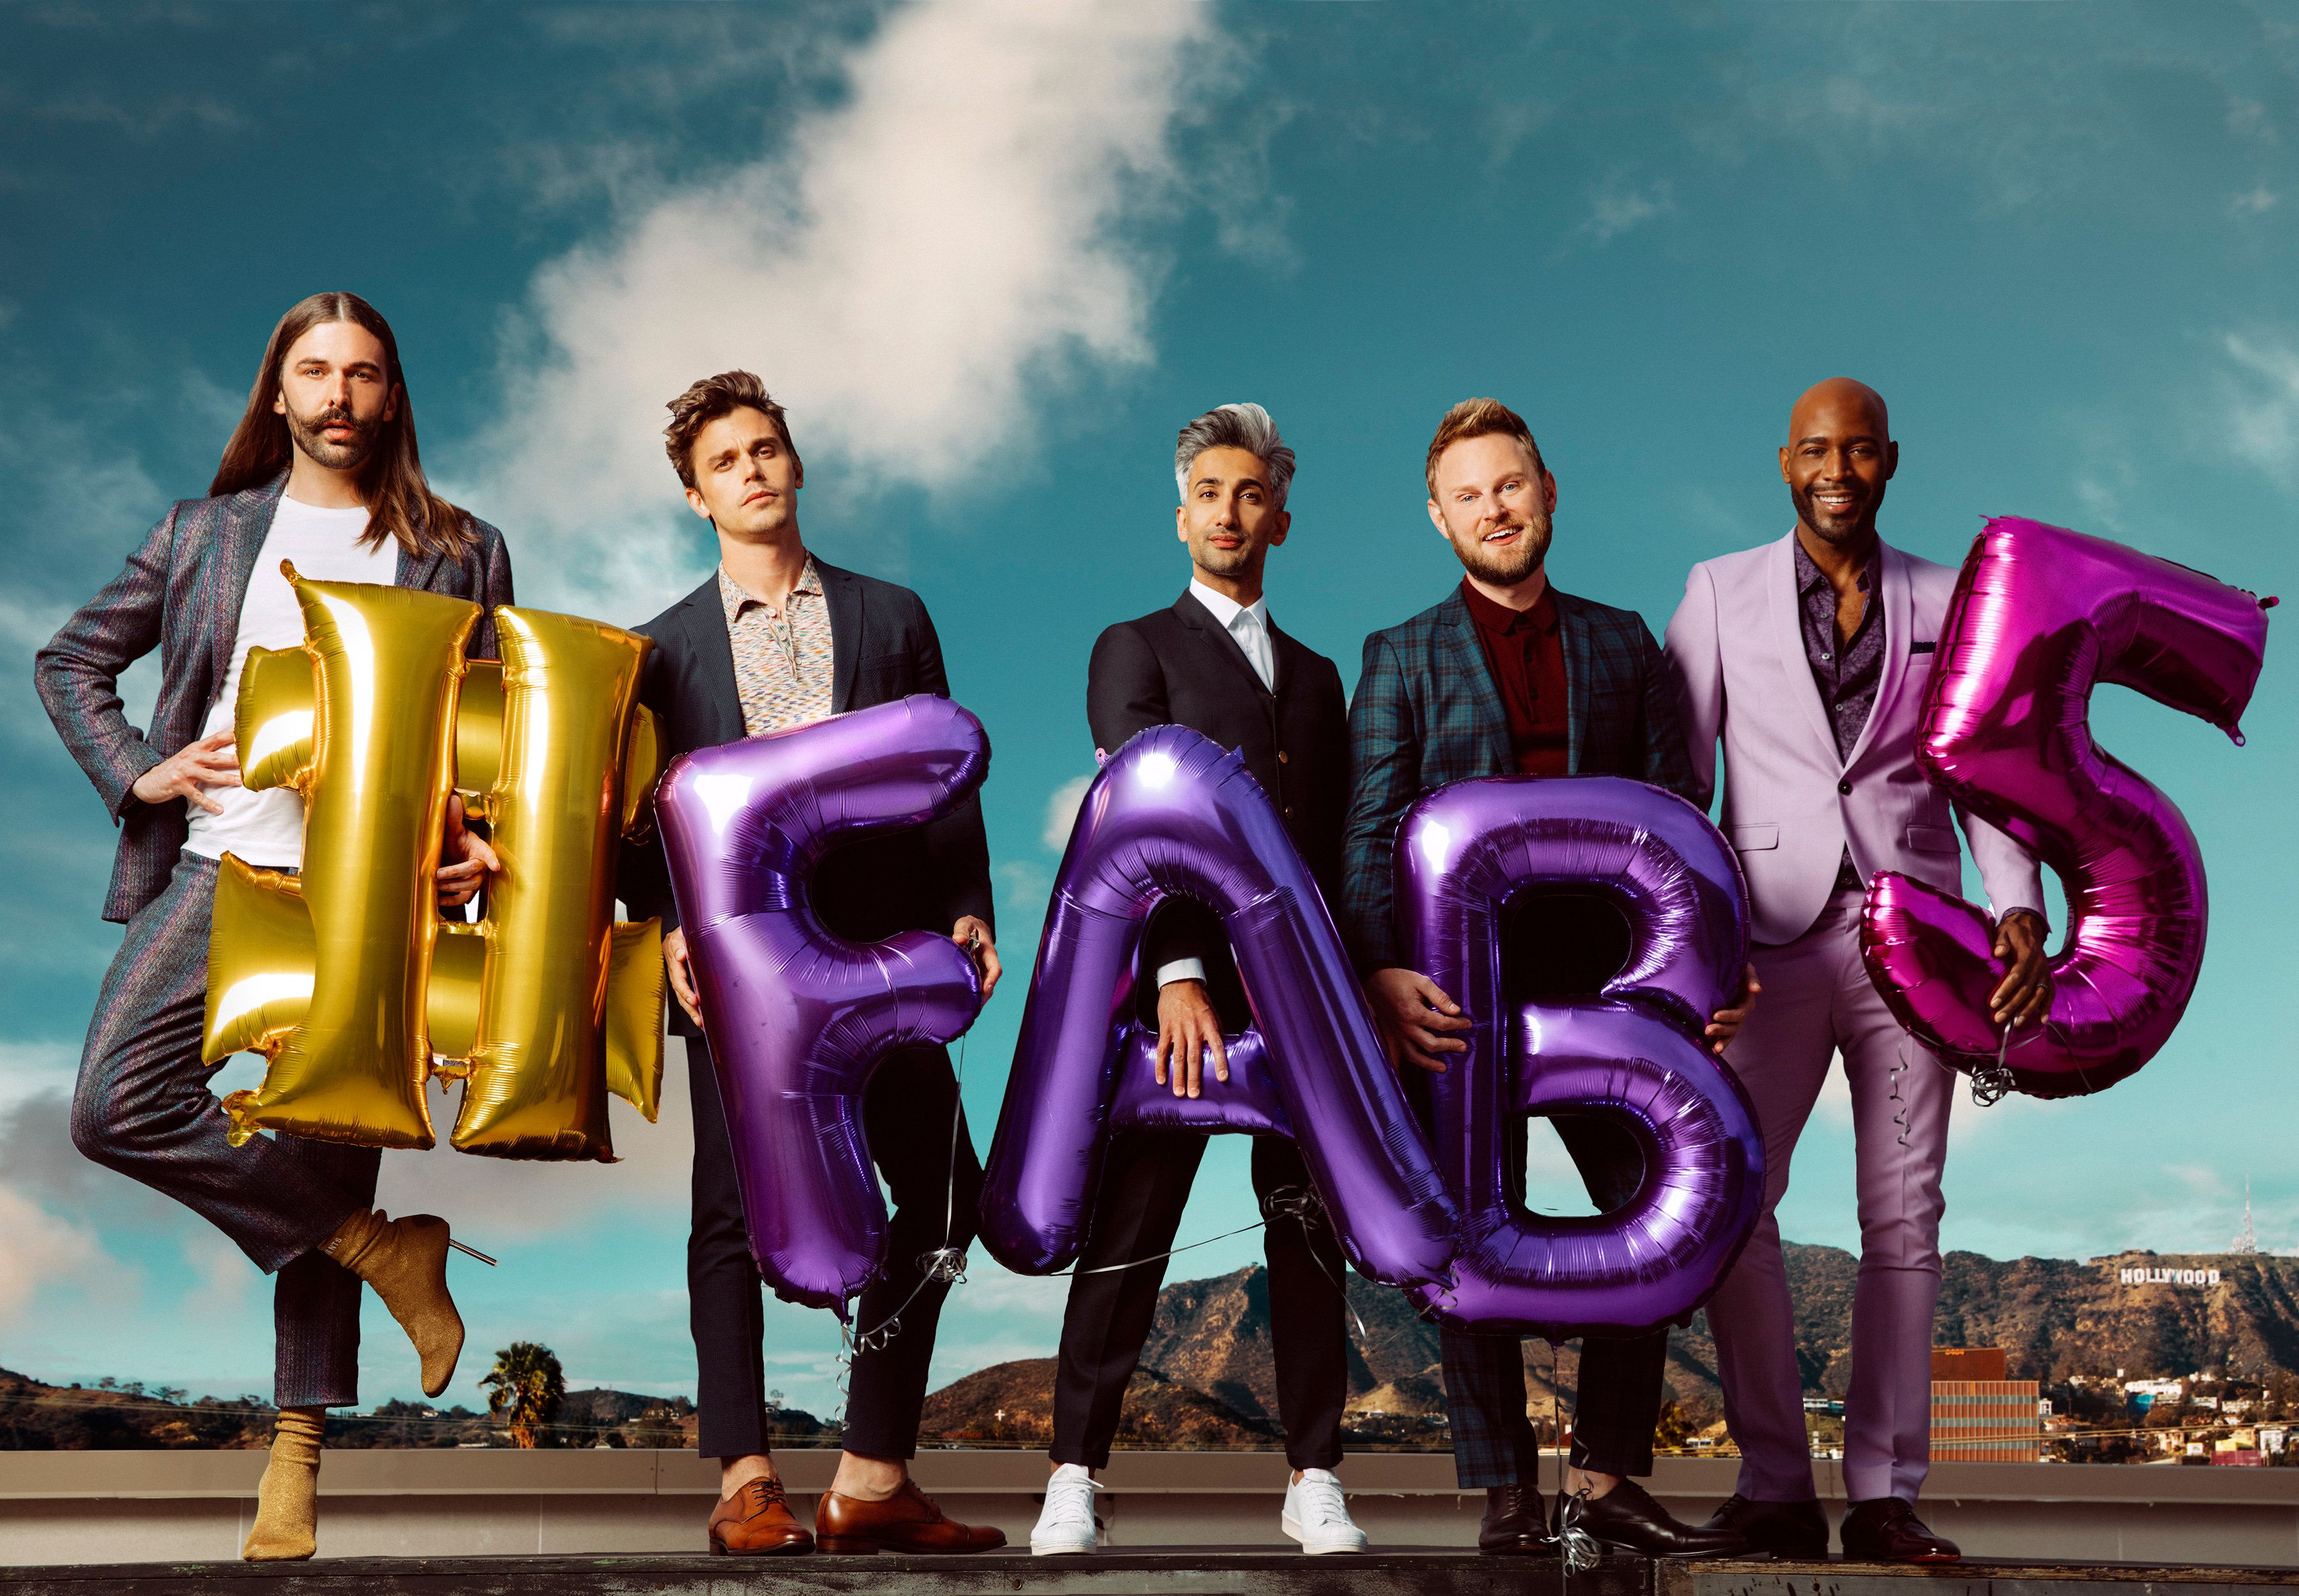 Jonathan Van Ness, Antoni Porowski, Tan France, Bobby Berk, and Karamo Brown from Queer Eye